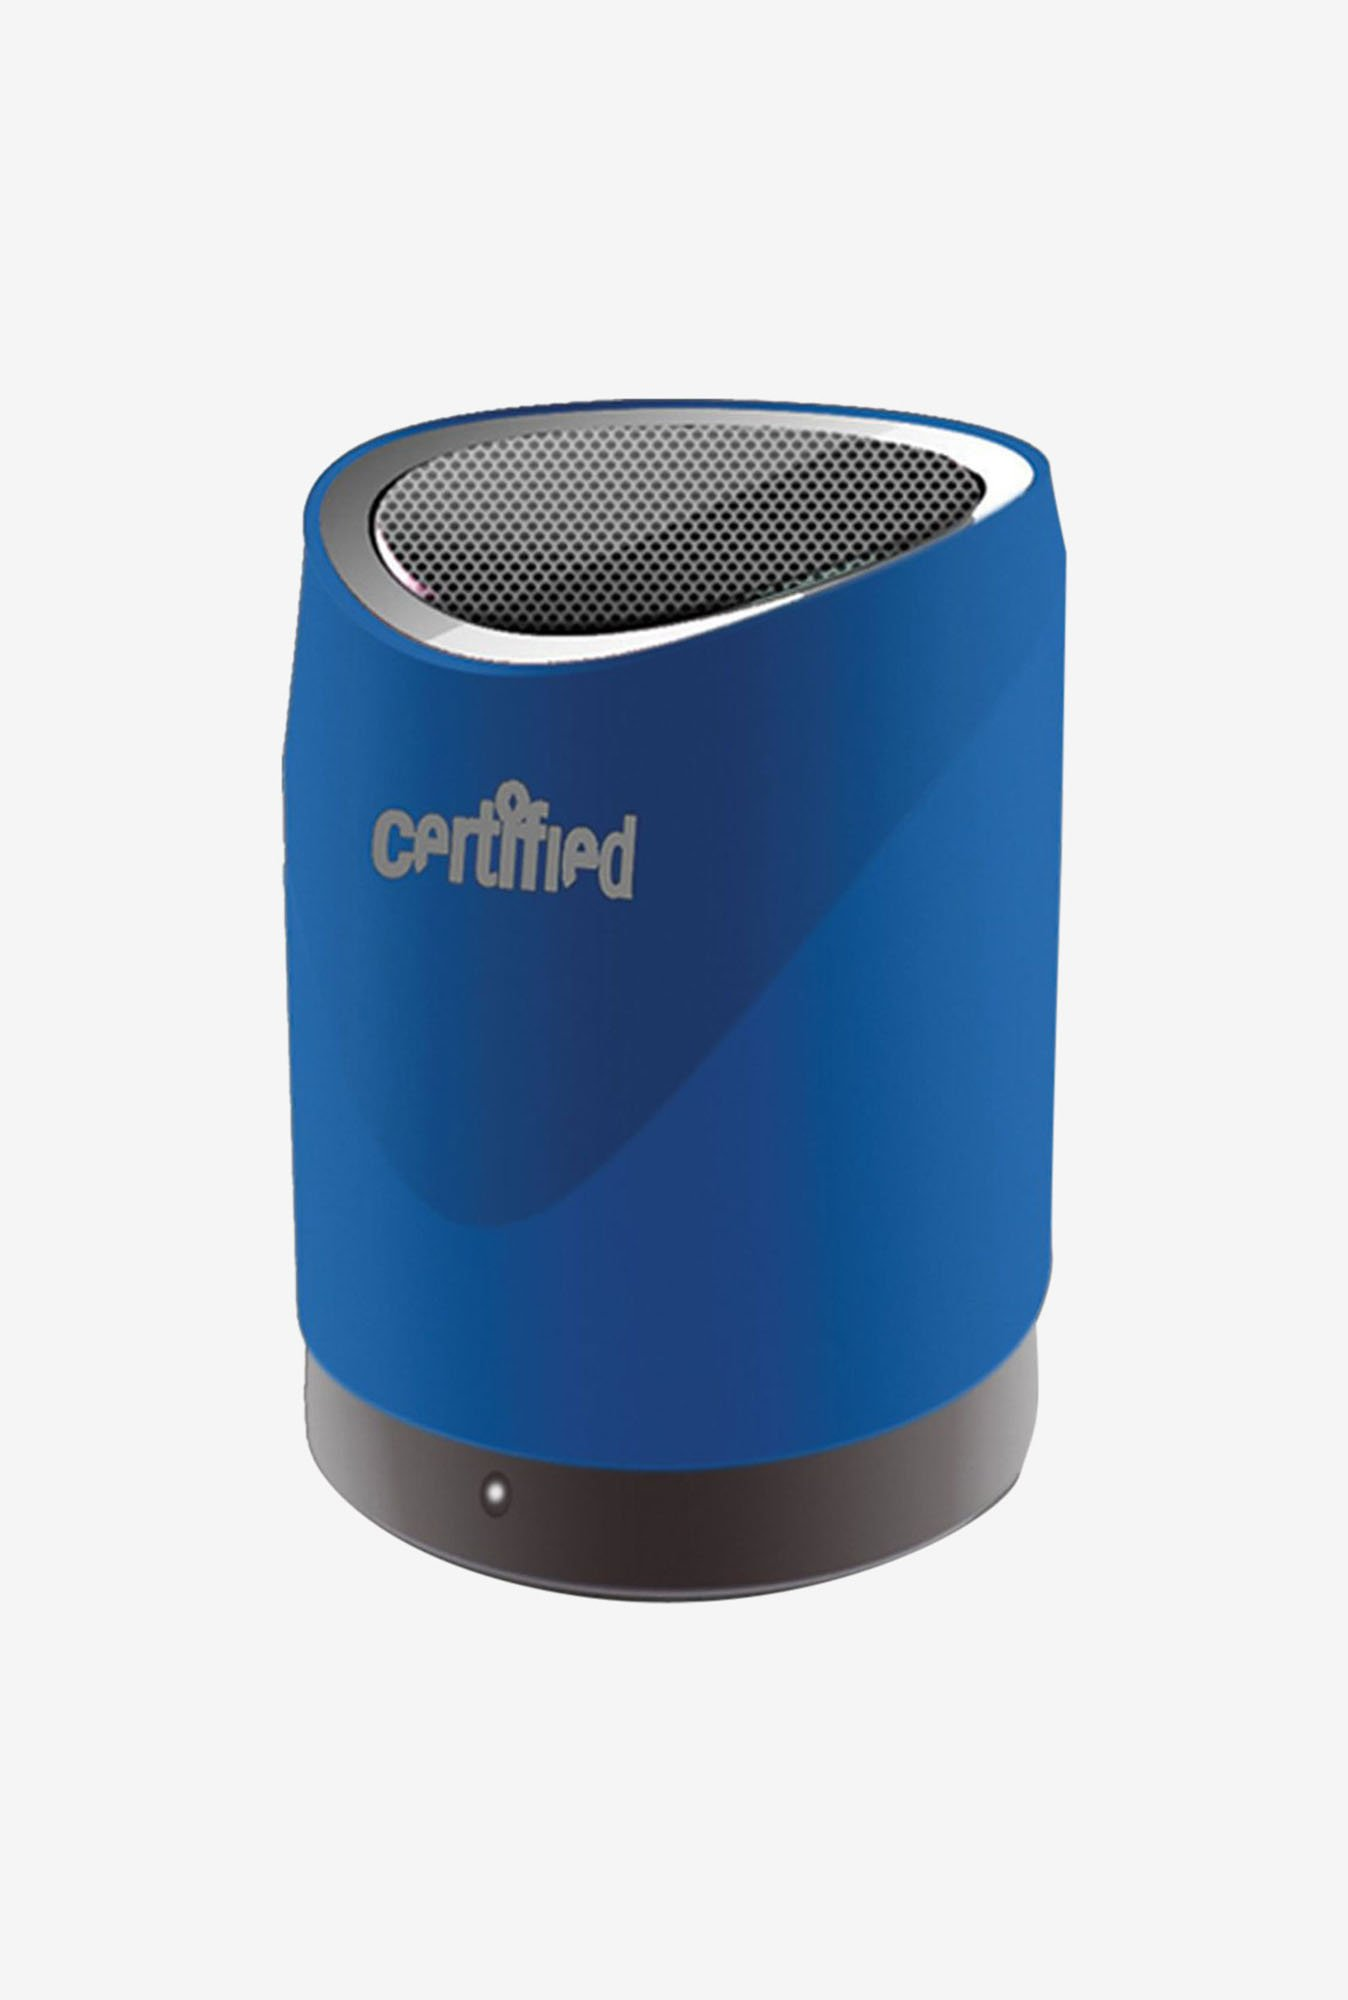 Certified SPBT200BL Mini Portable Bluetooth Speaker (Blue)